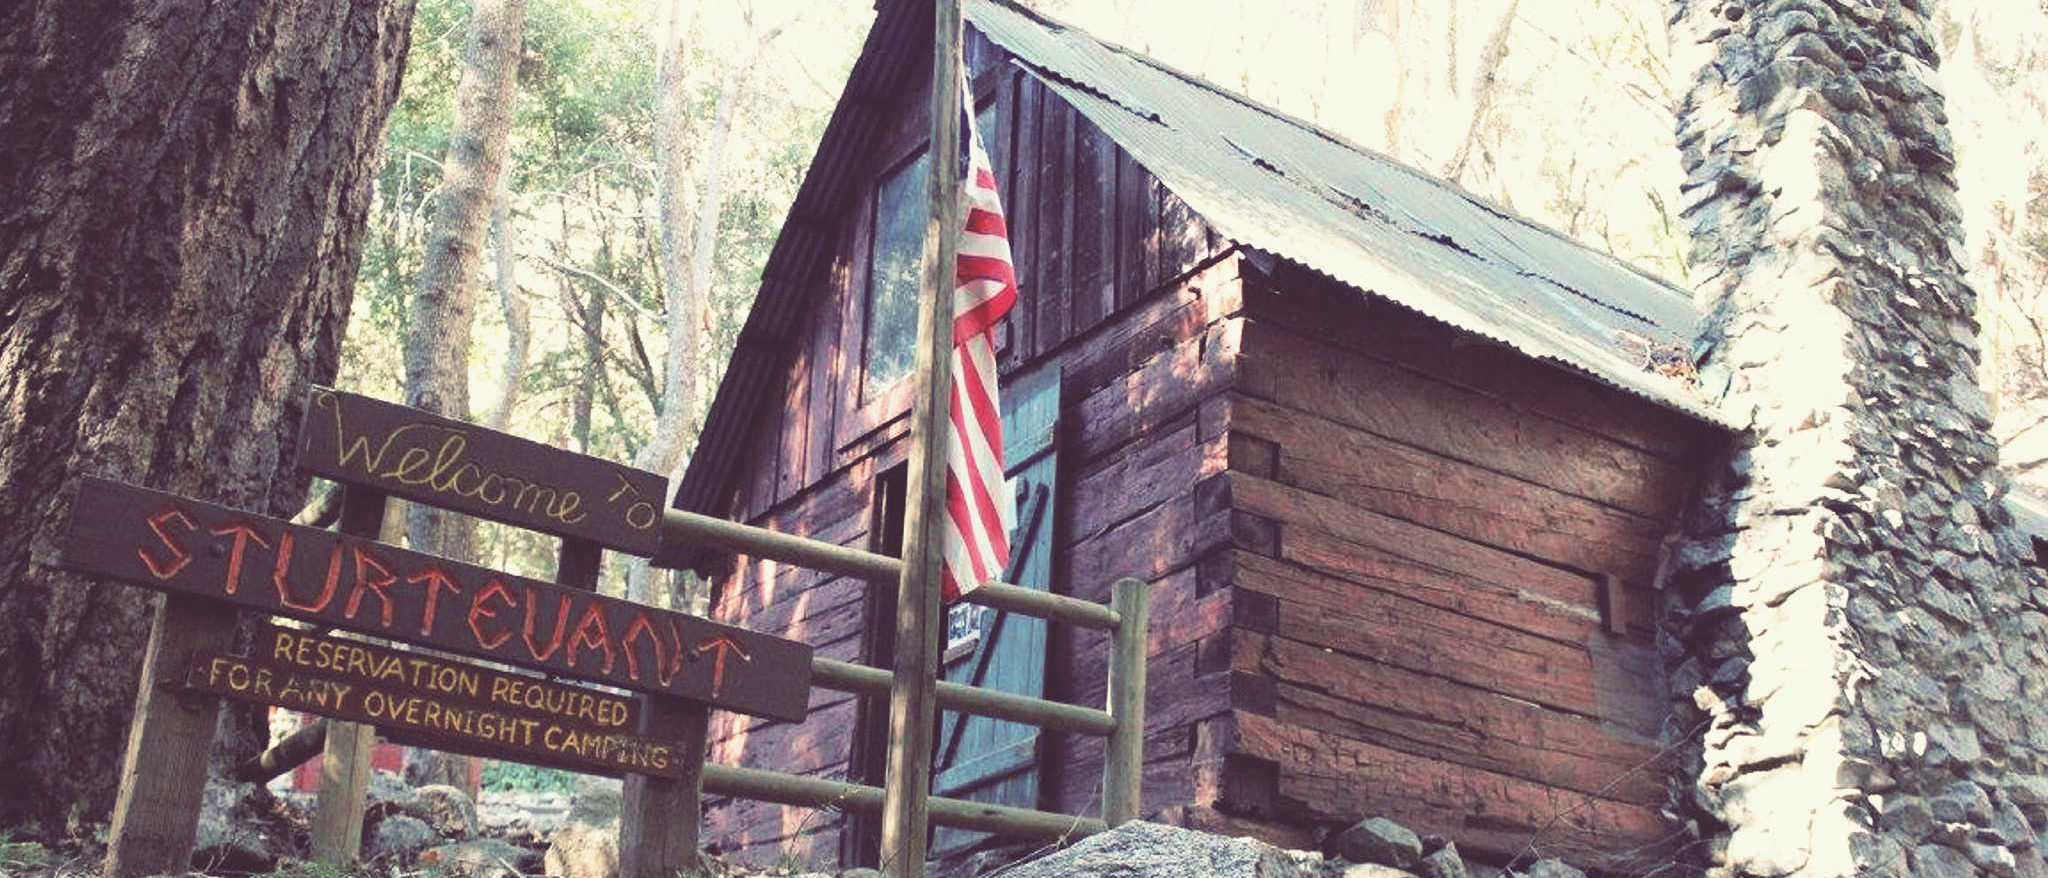 Picture the Sturtevant Camp ranger cabin with U.S. flag and sign welcoming visitors.